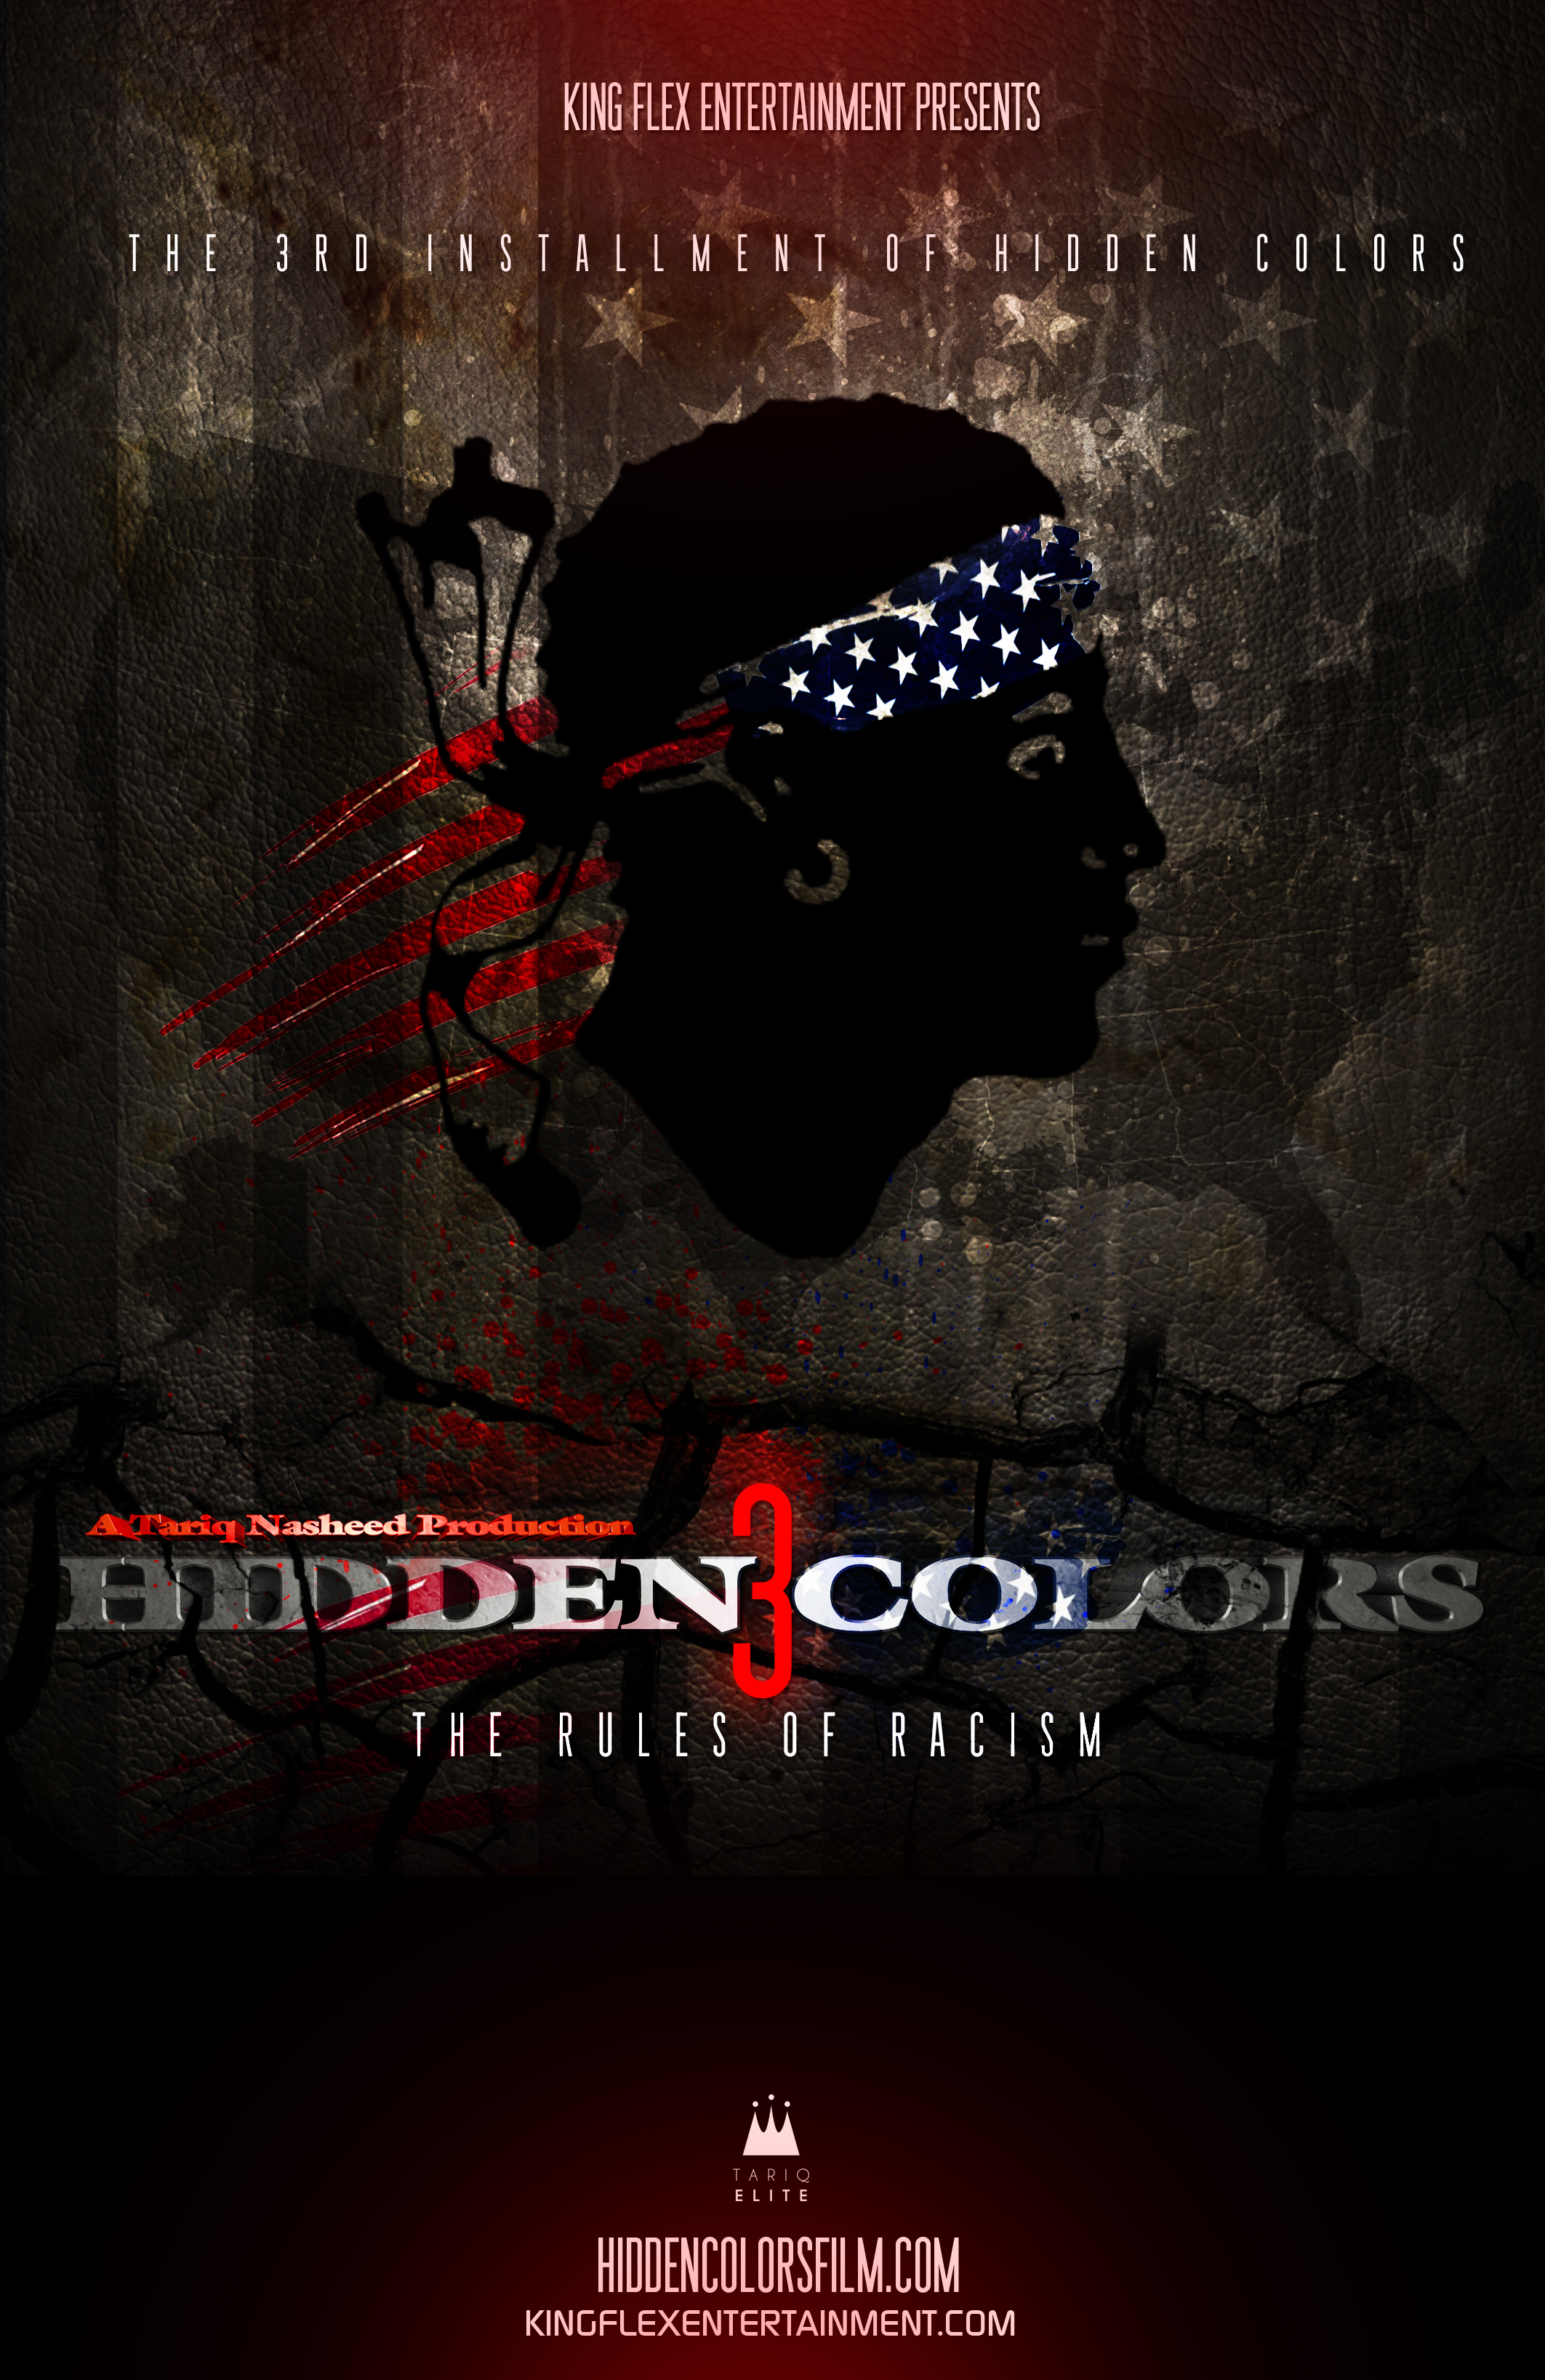 a personal analysis of the film hidden colors by tariq nasheed The strength of street knowledge: the two hidden colors documentaries offer an unprecedented look at black history from a worldwide scope they've also generated a fair amount of controversy tariq nasheed: yeah, many of them do.